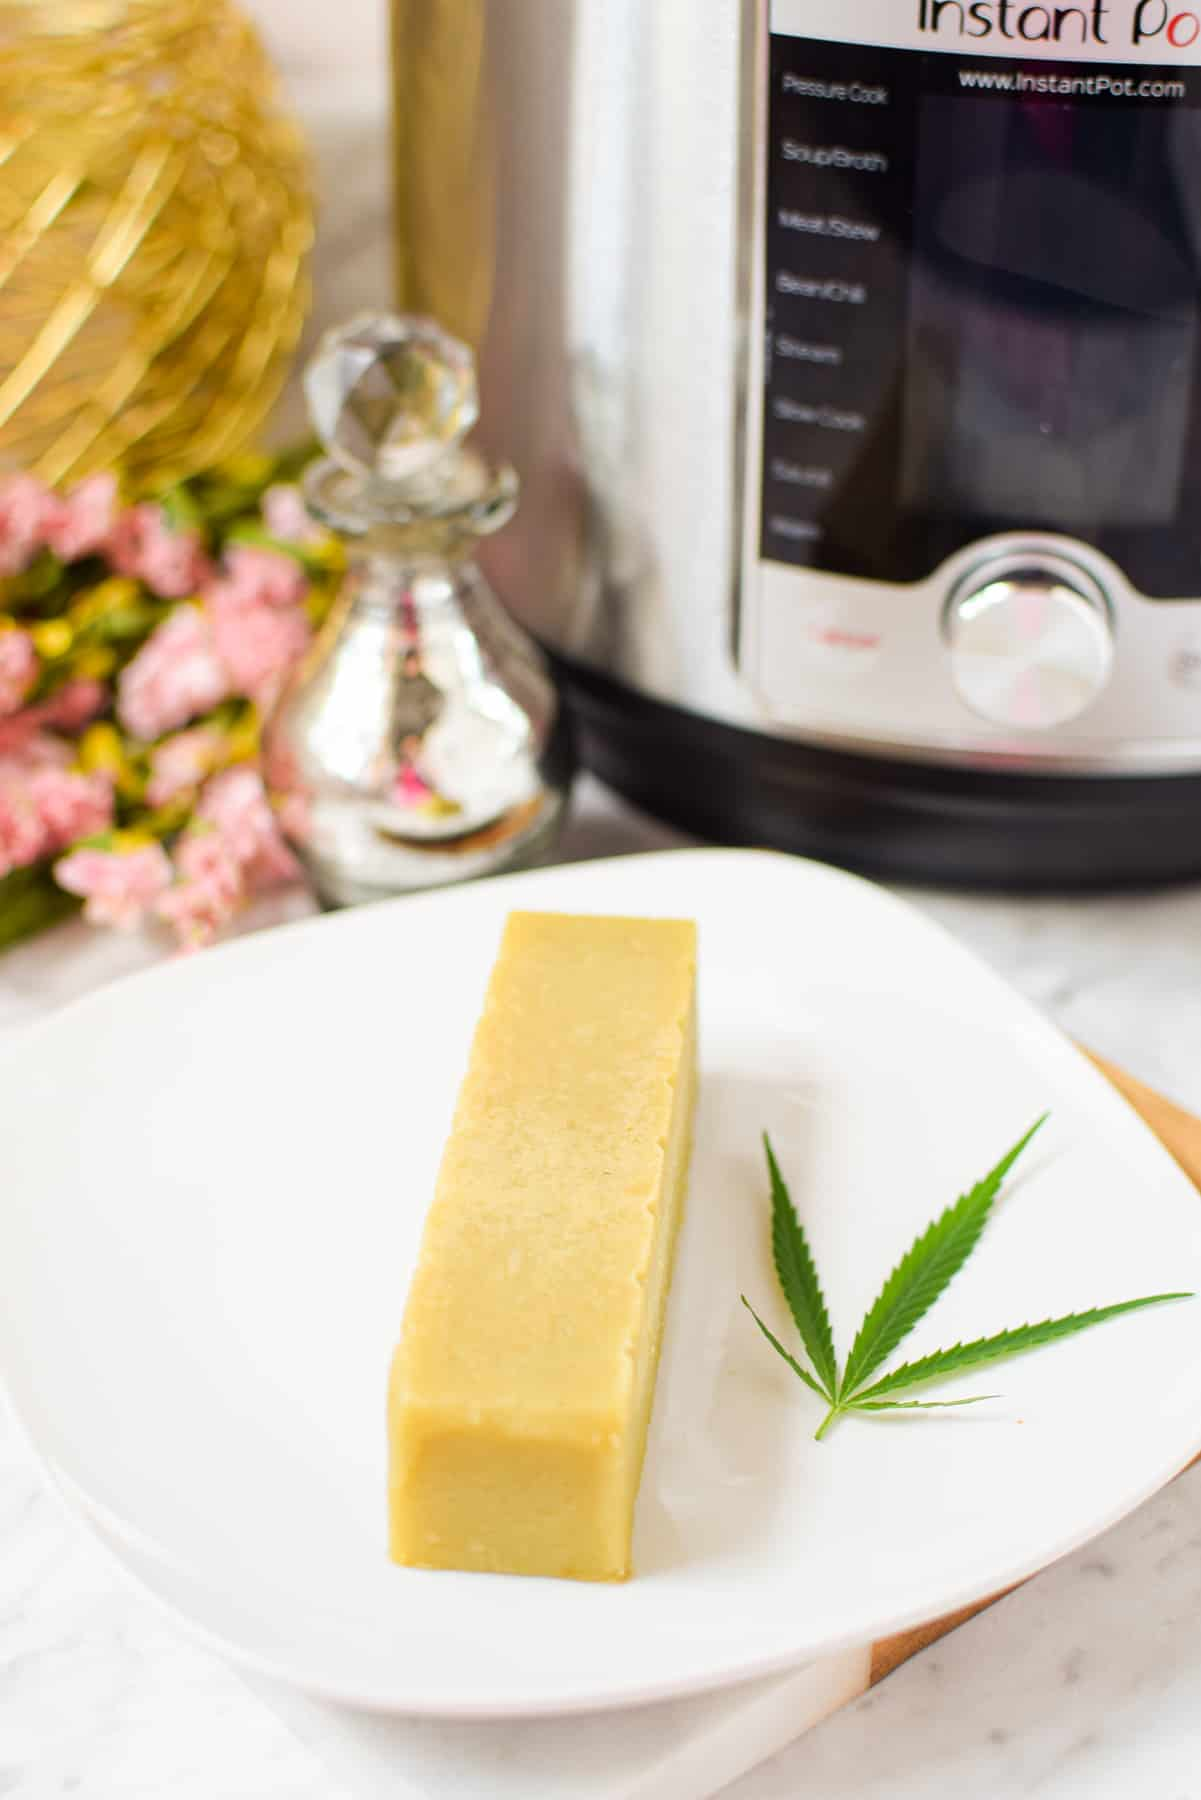 A picture of a stick of cannabutter on a white plate with an instant pot in the background